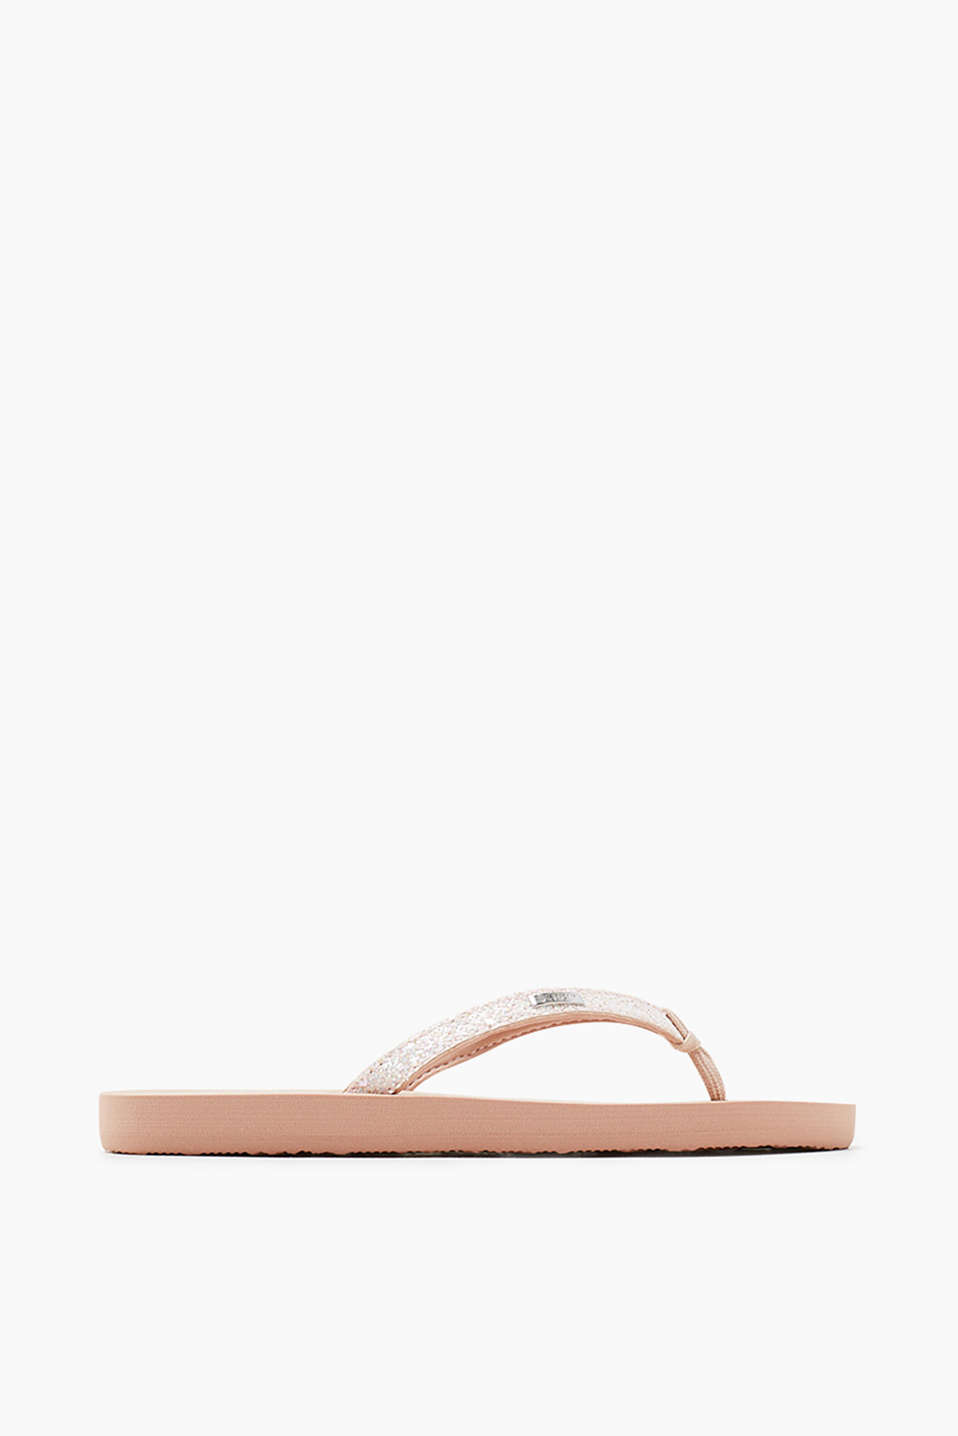 City slip slops with glitter-trimmed straps